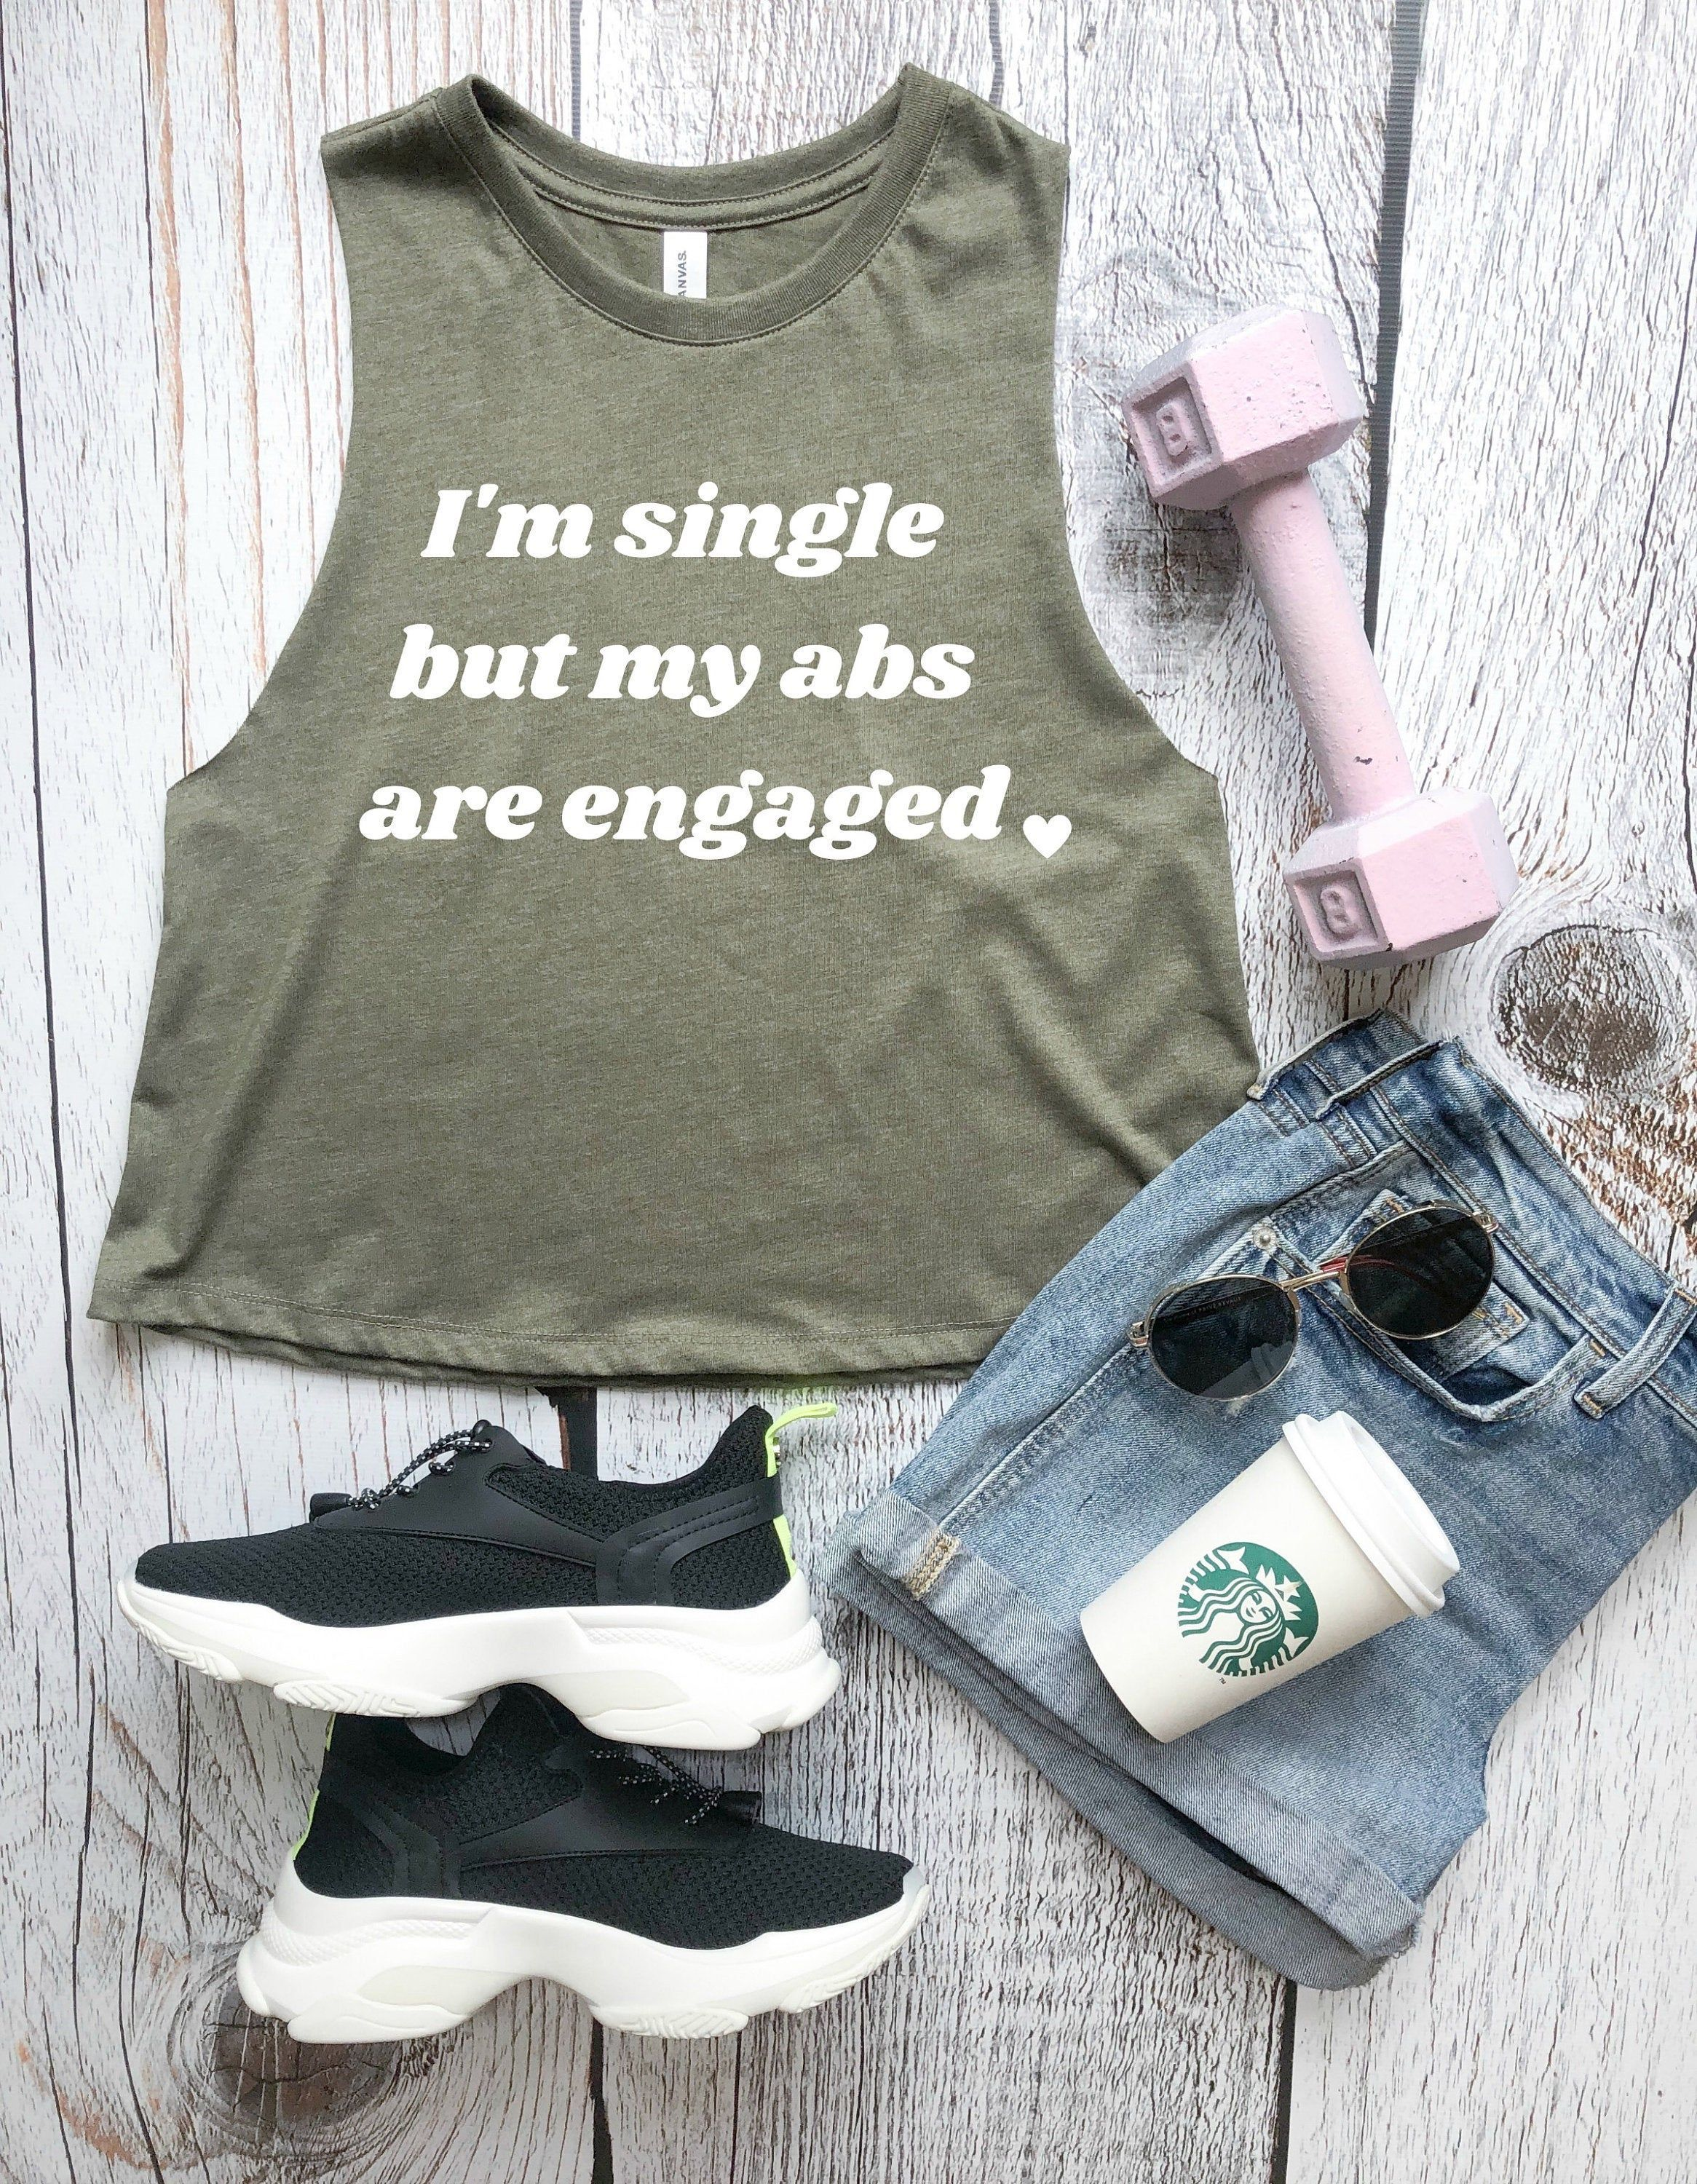 I'm Single But My Abs Are Engaged Women's Cropped Racerback Tank, Funny Workout Tank, Women's Fitnes...